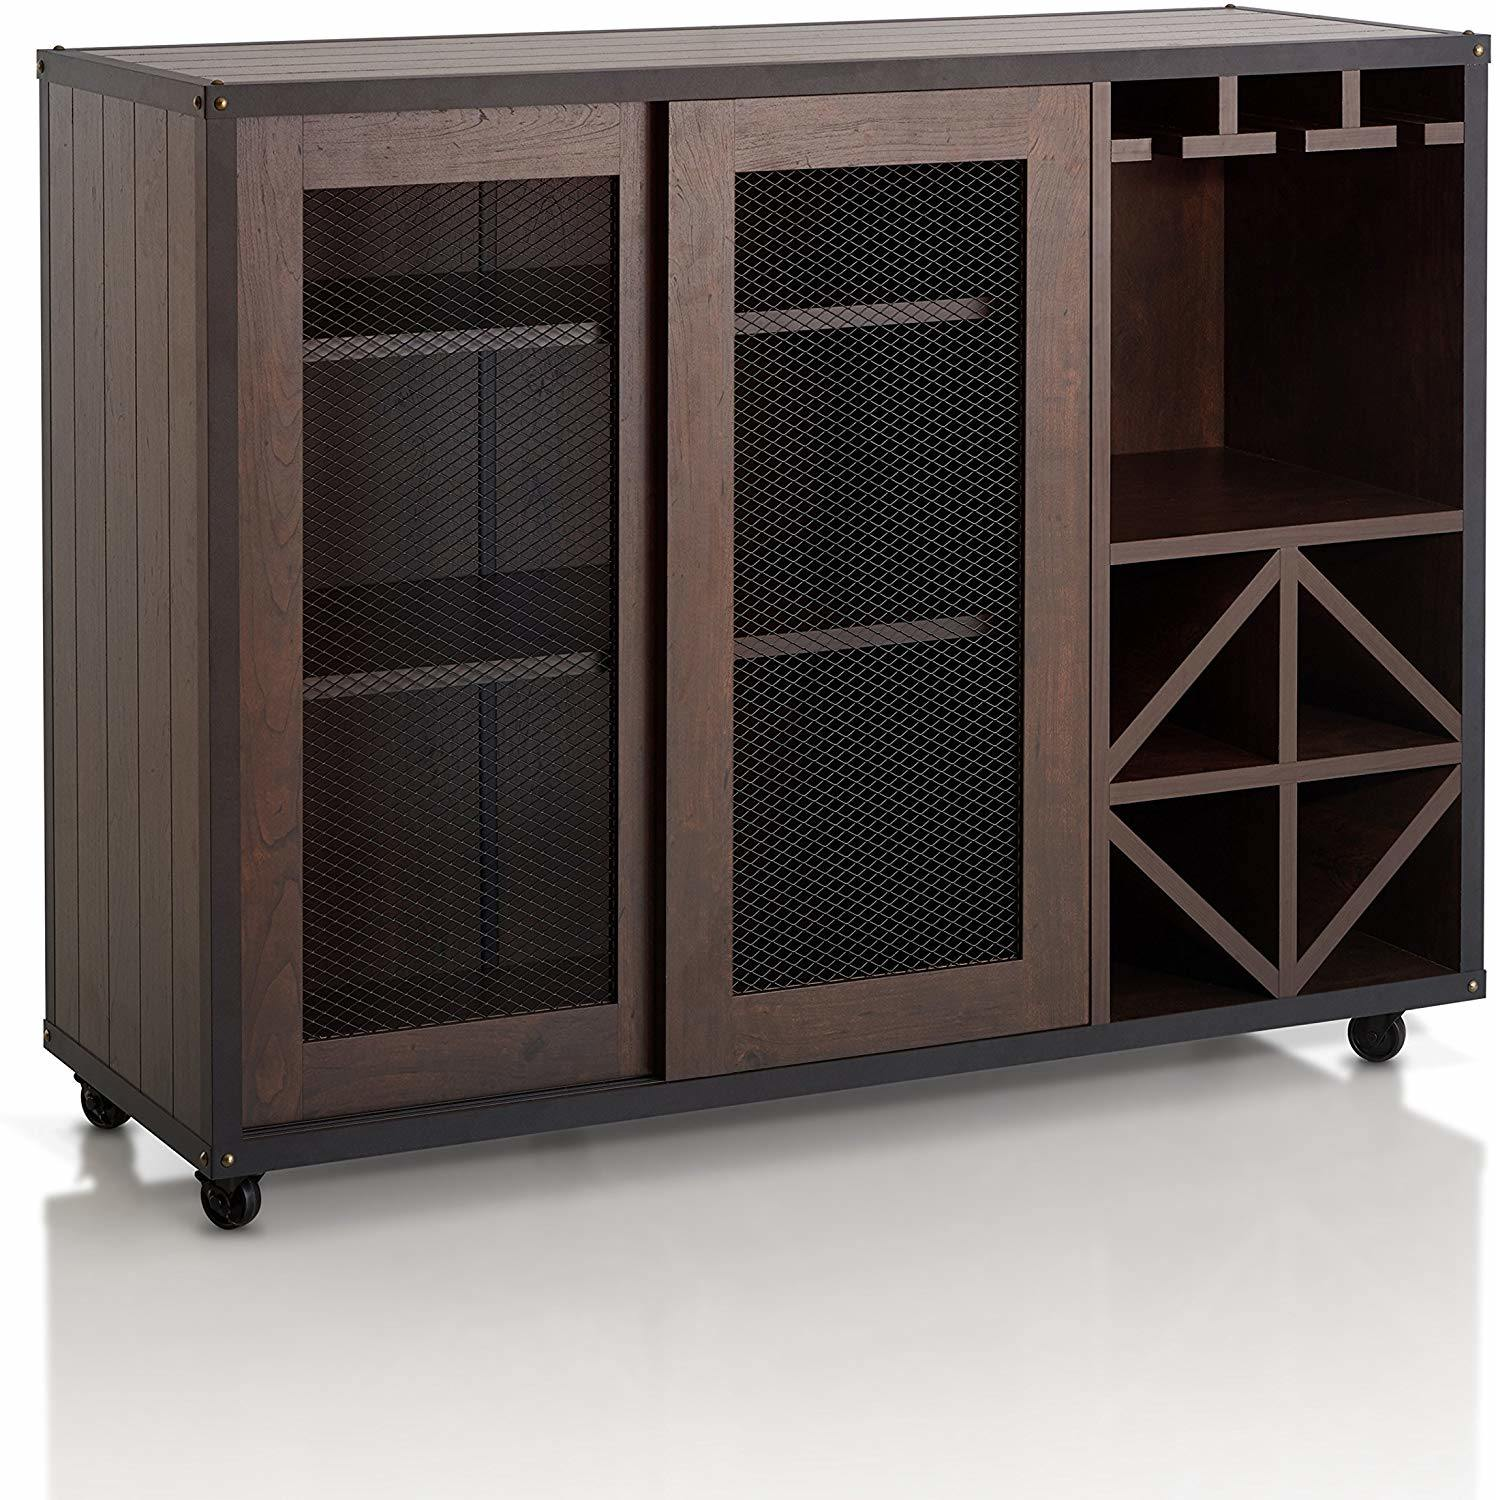 Picture of: Chinese Furniture Wooden Buffet Antique Reproduction Furniture Kitchen Cabinets Sliding Door Multi Storage Buffet Sideboard With Wine Rack And Caster Wheels Chinese Furniture Wooden Buffet Wooden Kitchen Cabinet